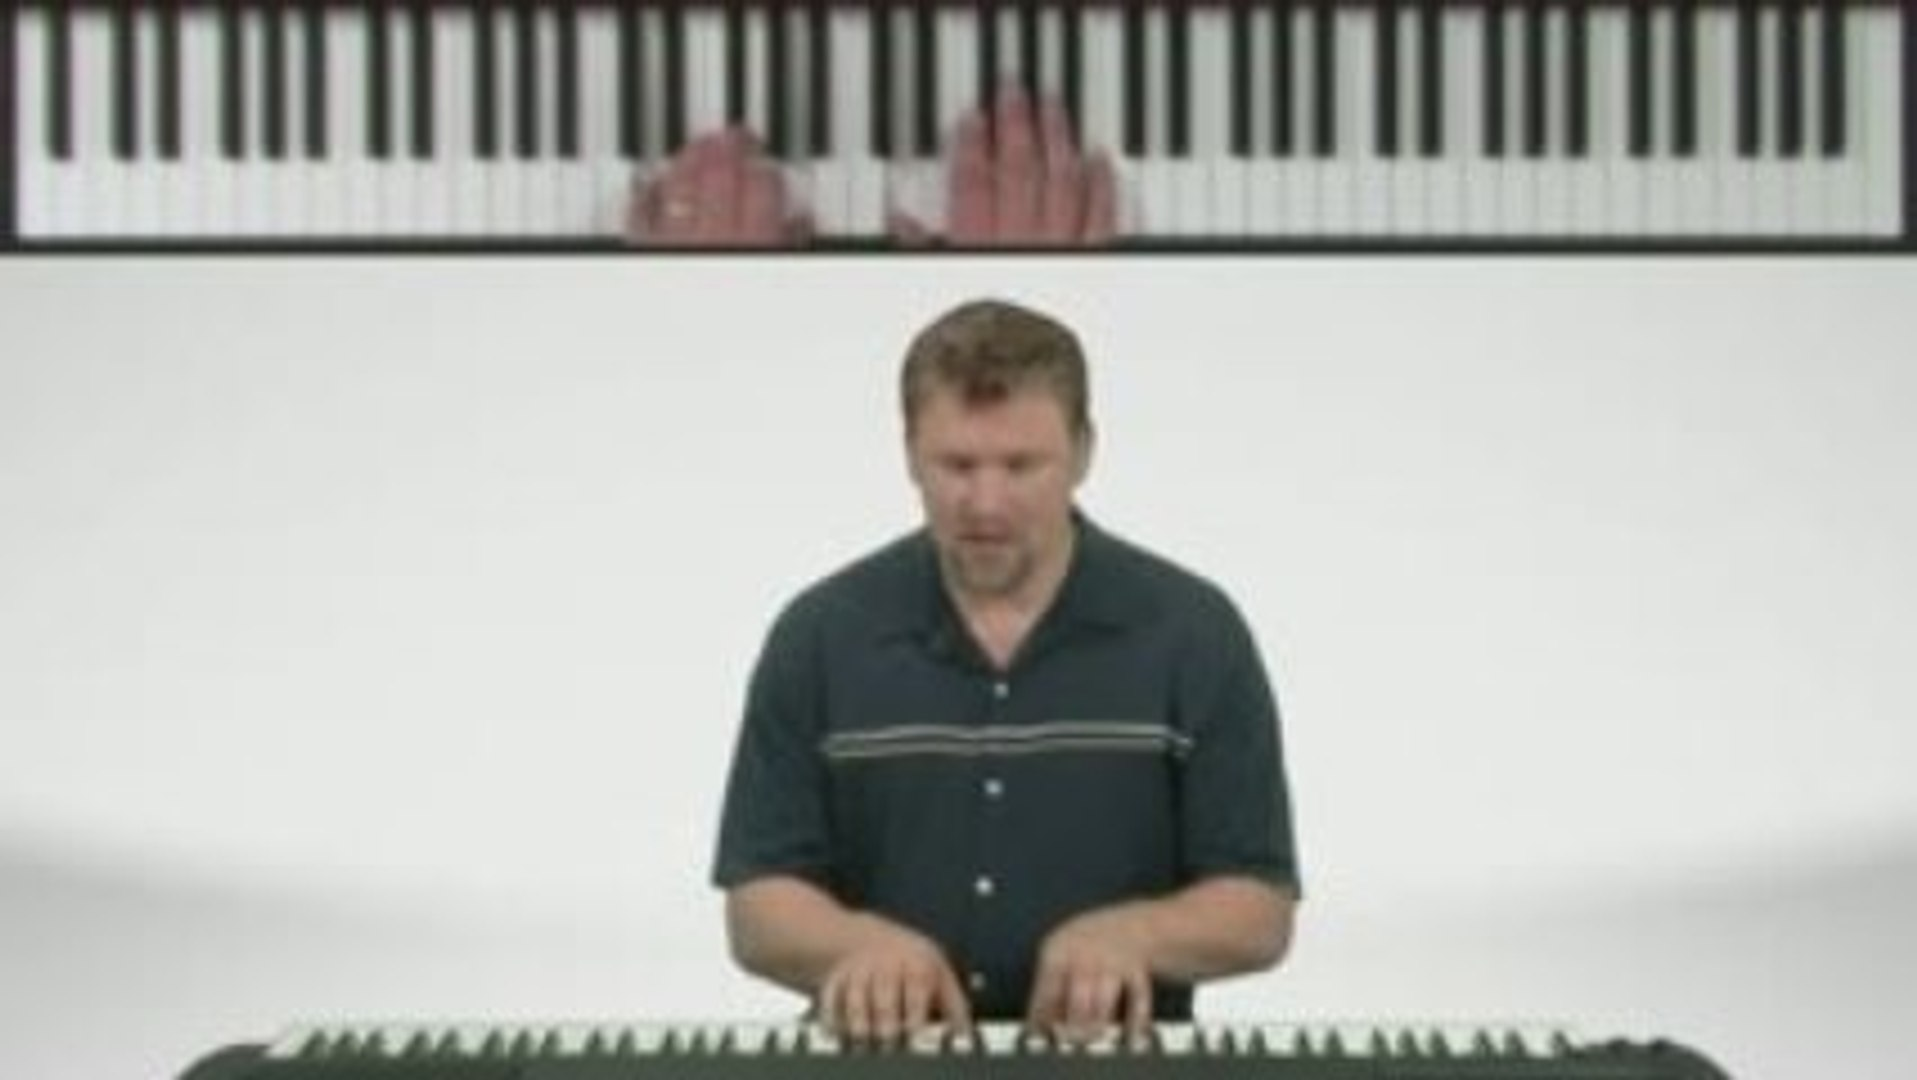 How To Play 'Twinkle Twinkle Little Star' - Piano Lessons